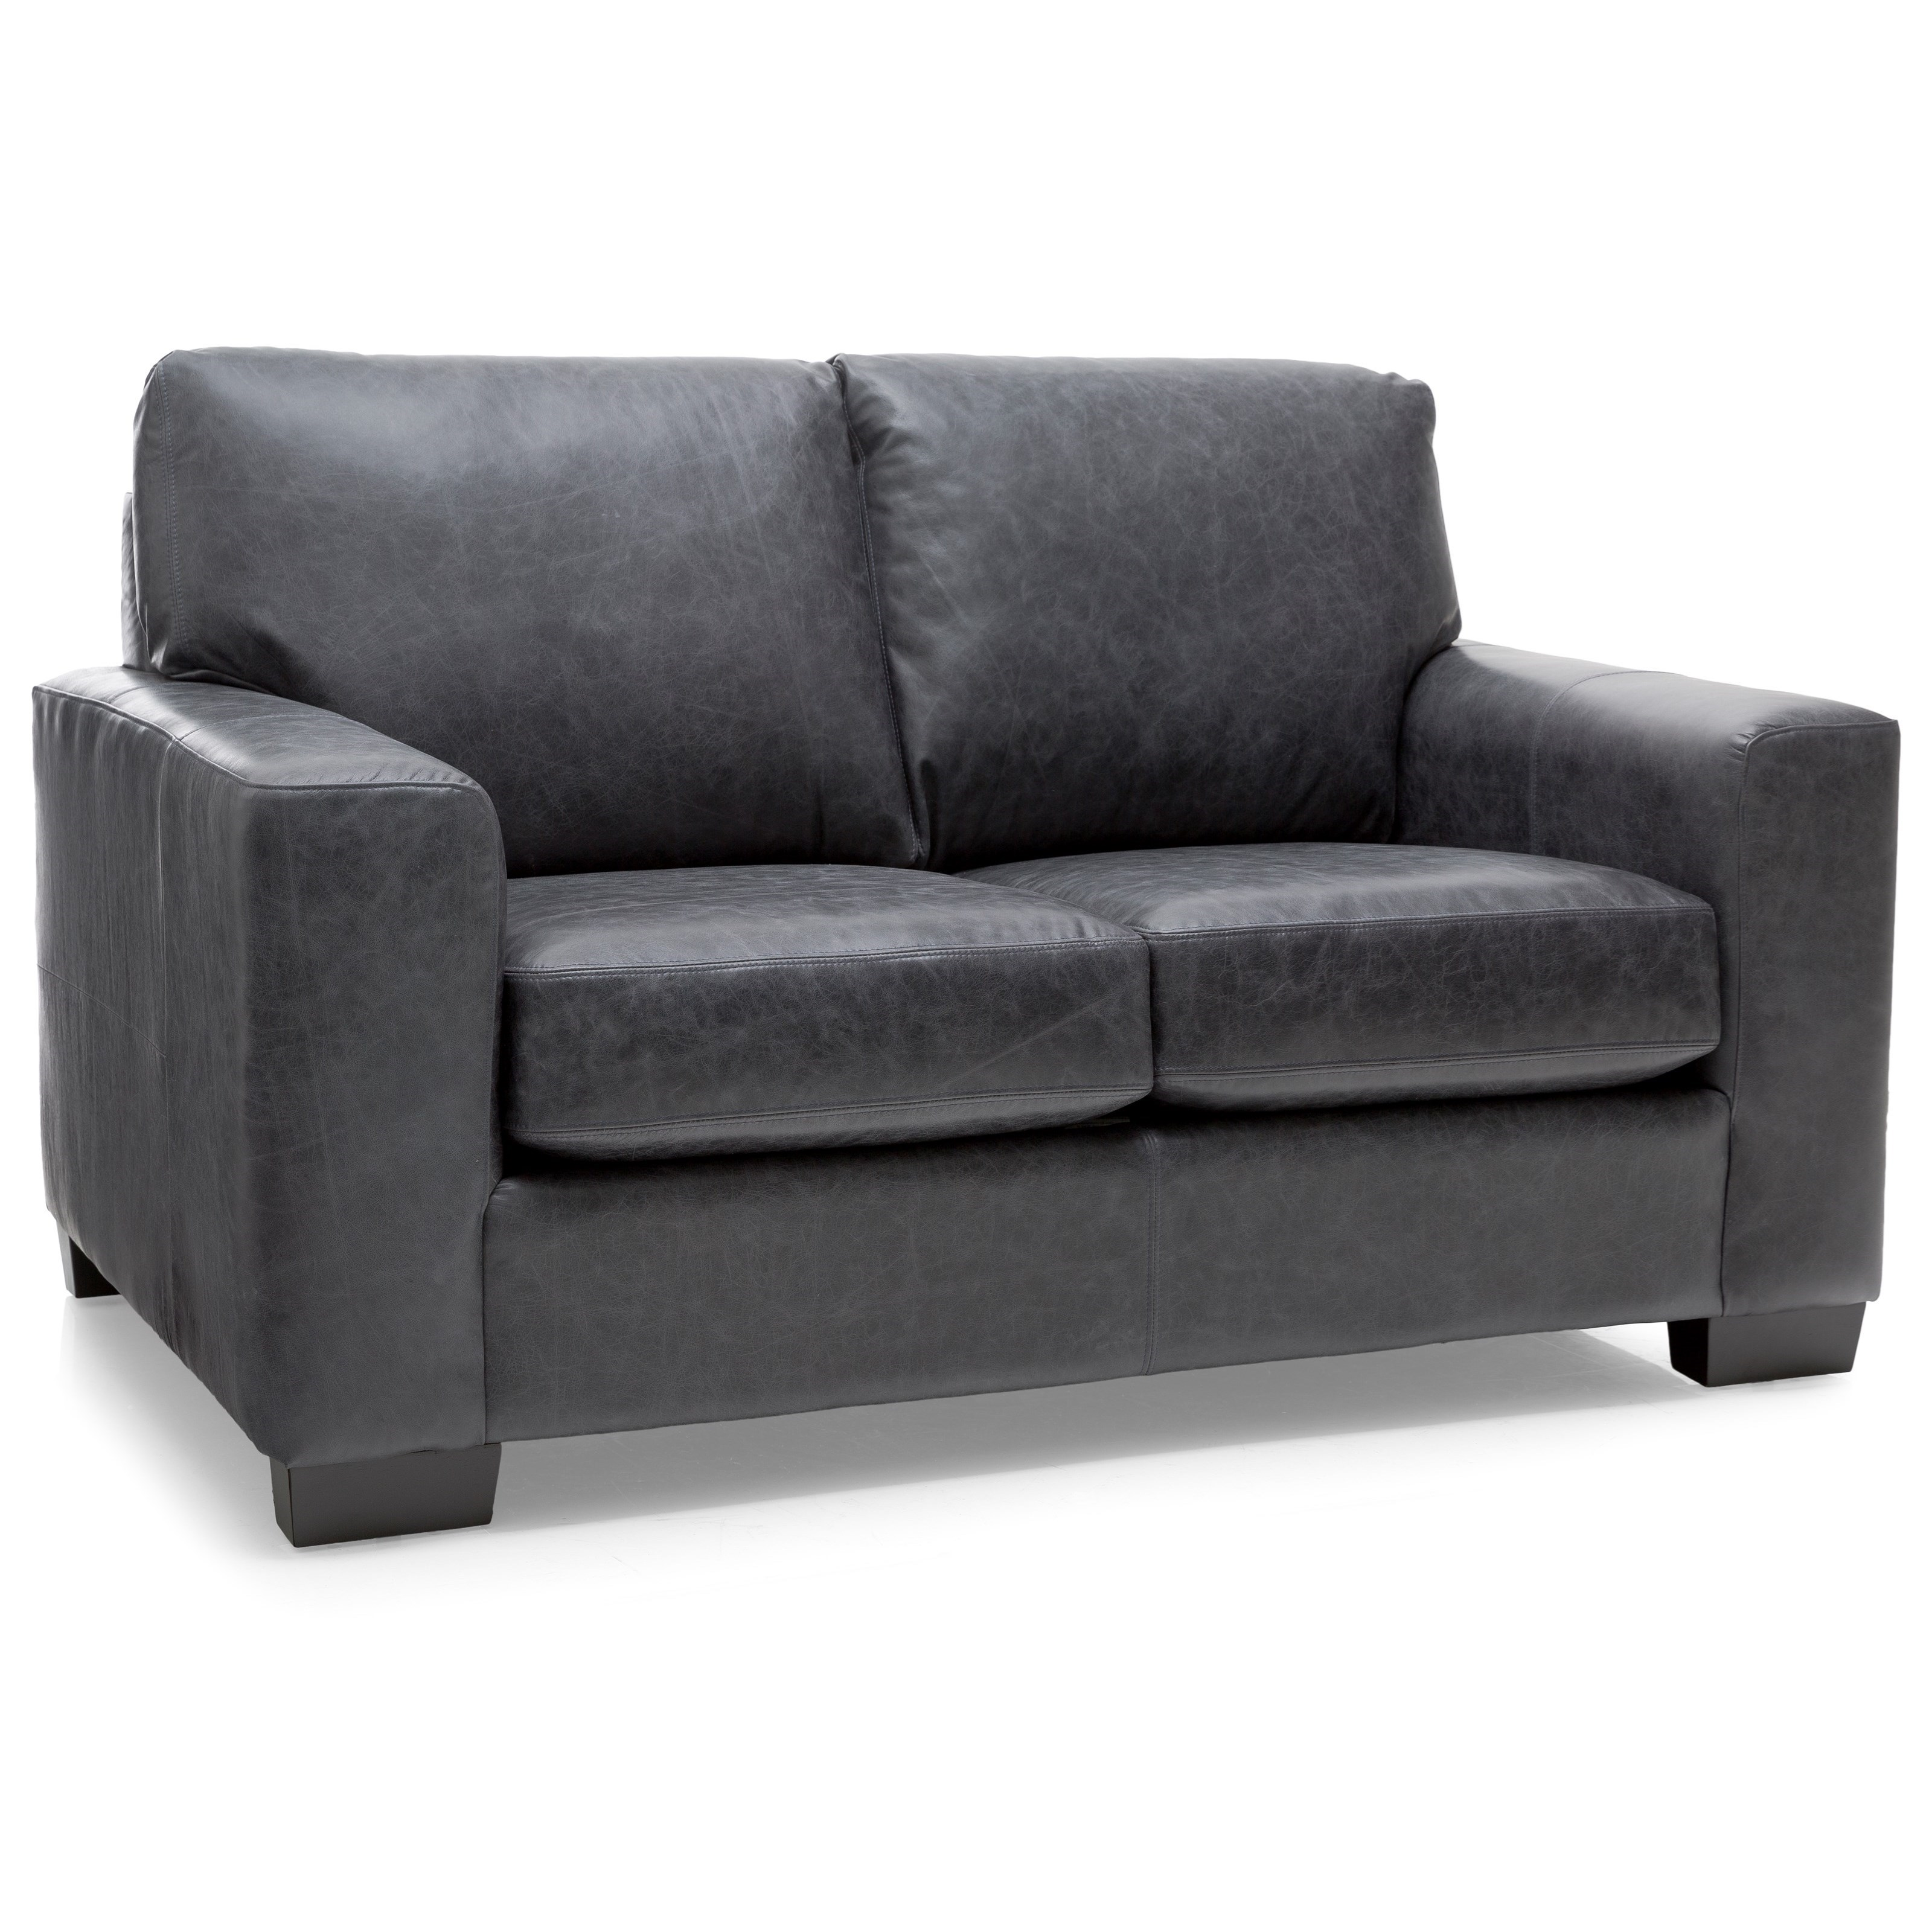 3483 Loveseat by Decor-Rest at Rooms for Less